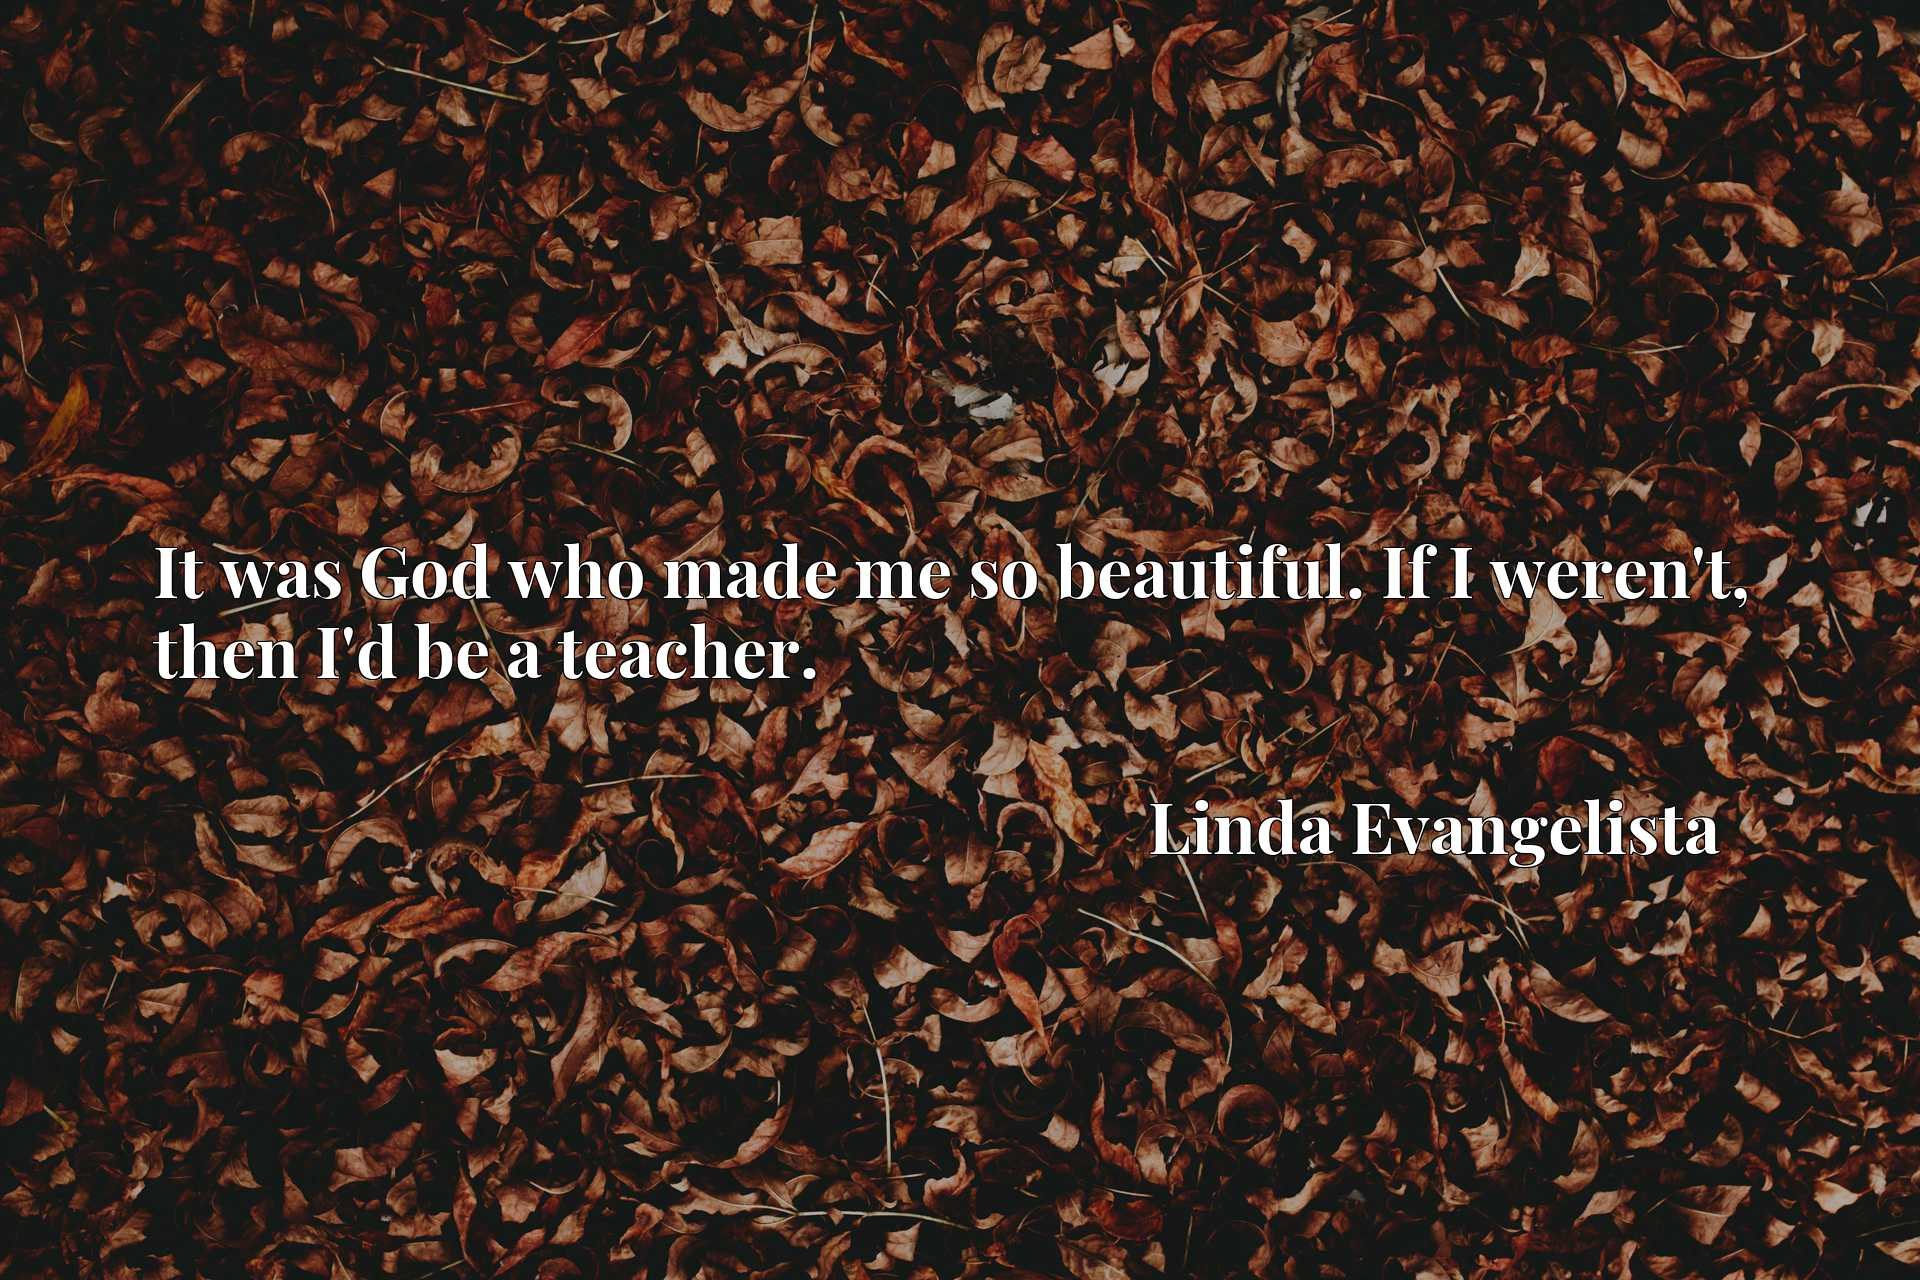 Quote Picture :It was God who made me so beautiful. If I weren't, then I'd be a teacher.